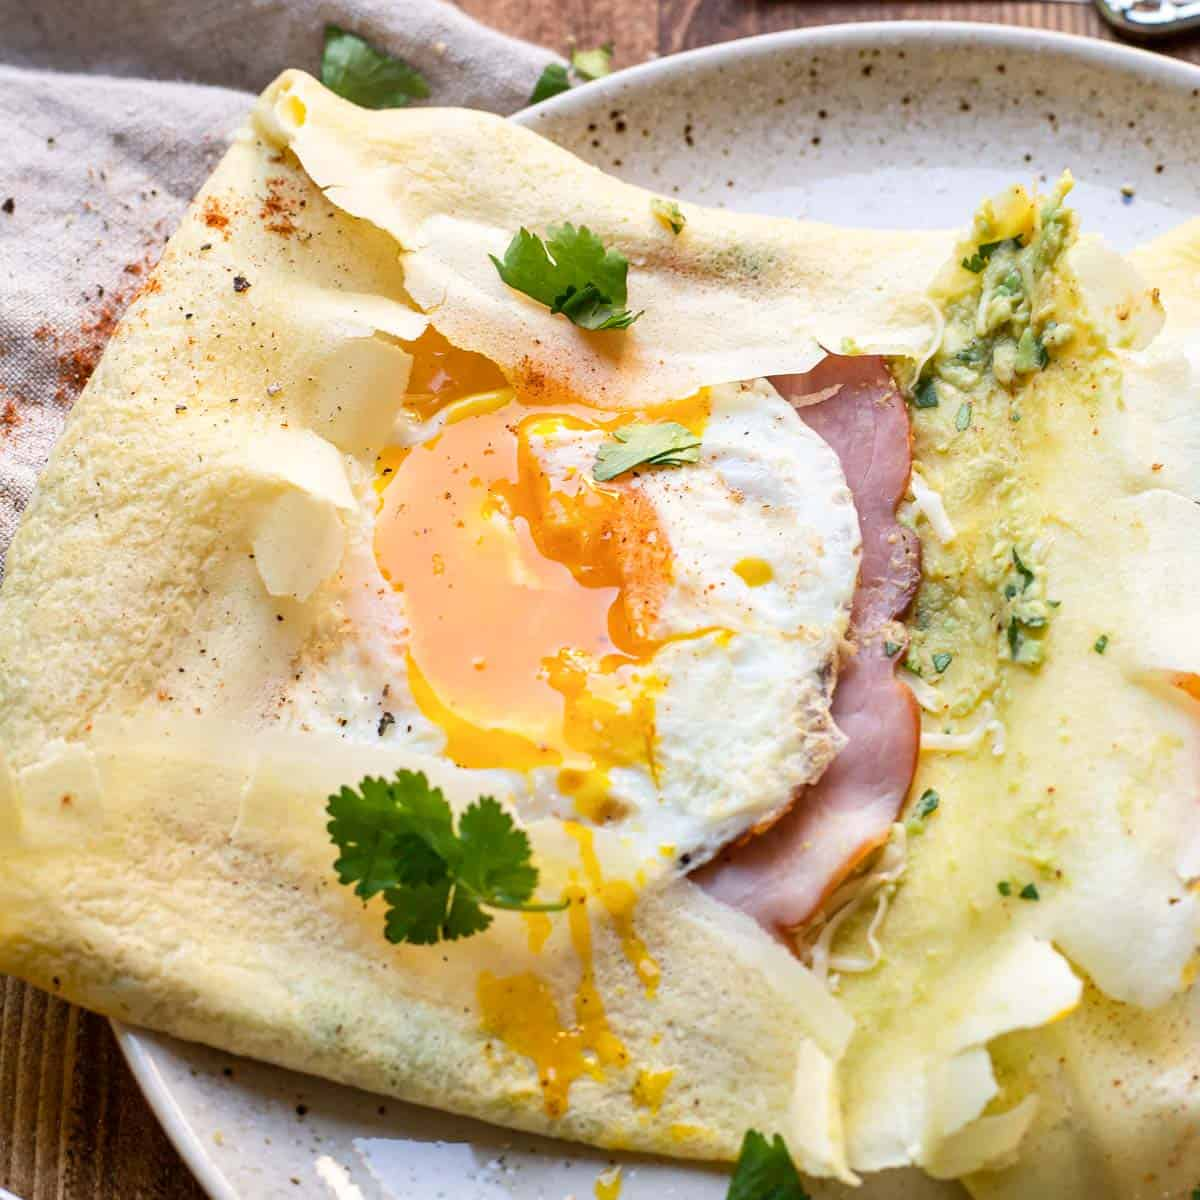 savory crepe with guacamole, jack cheese, ham and a sunny side up egg.